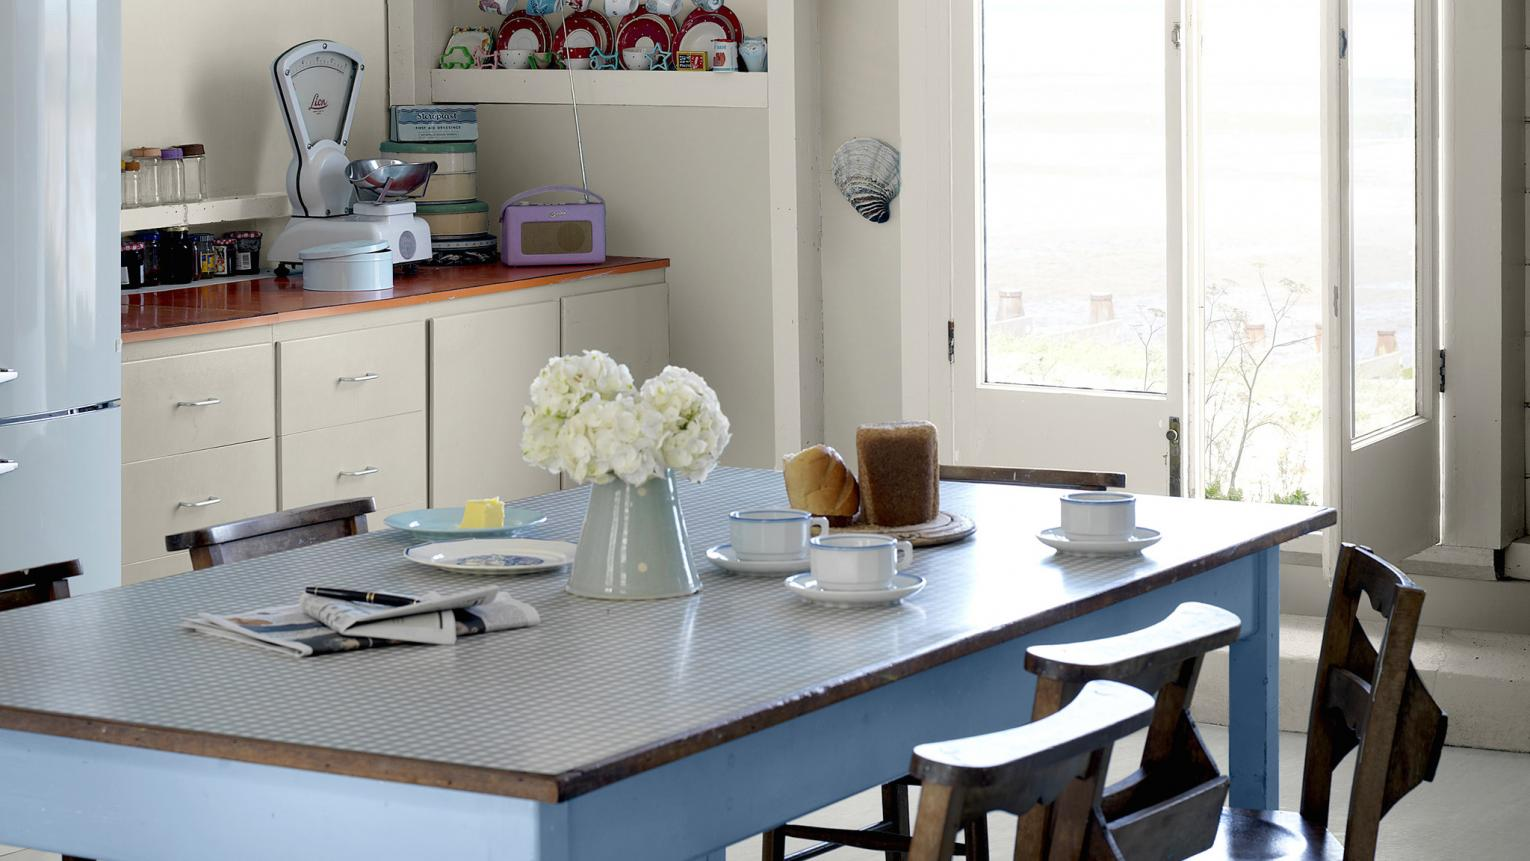 Blend warm blues and cool neutrals to create a stylish English country kitchen